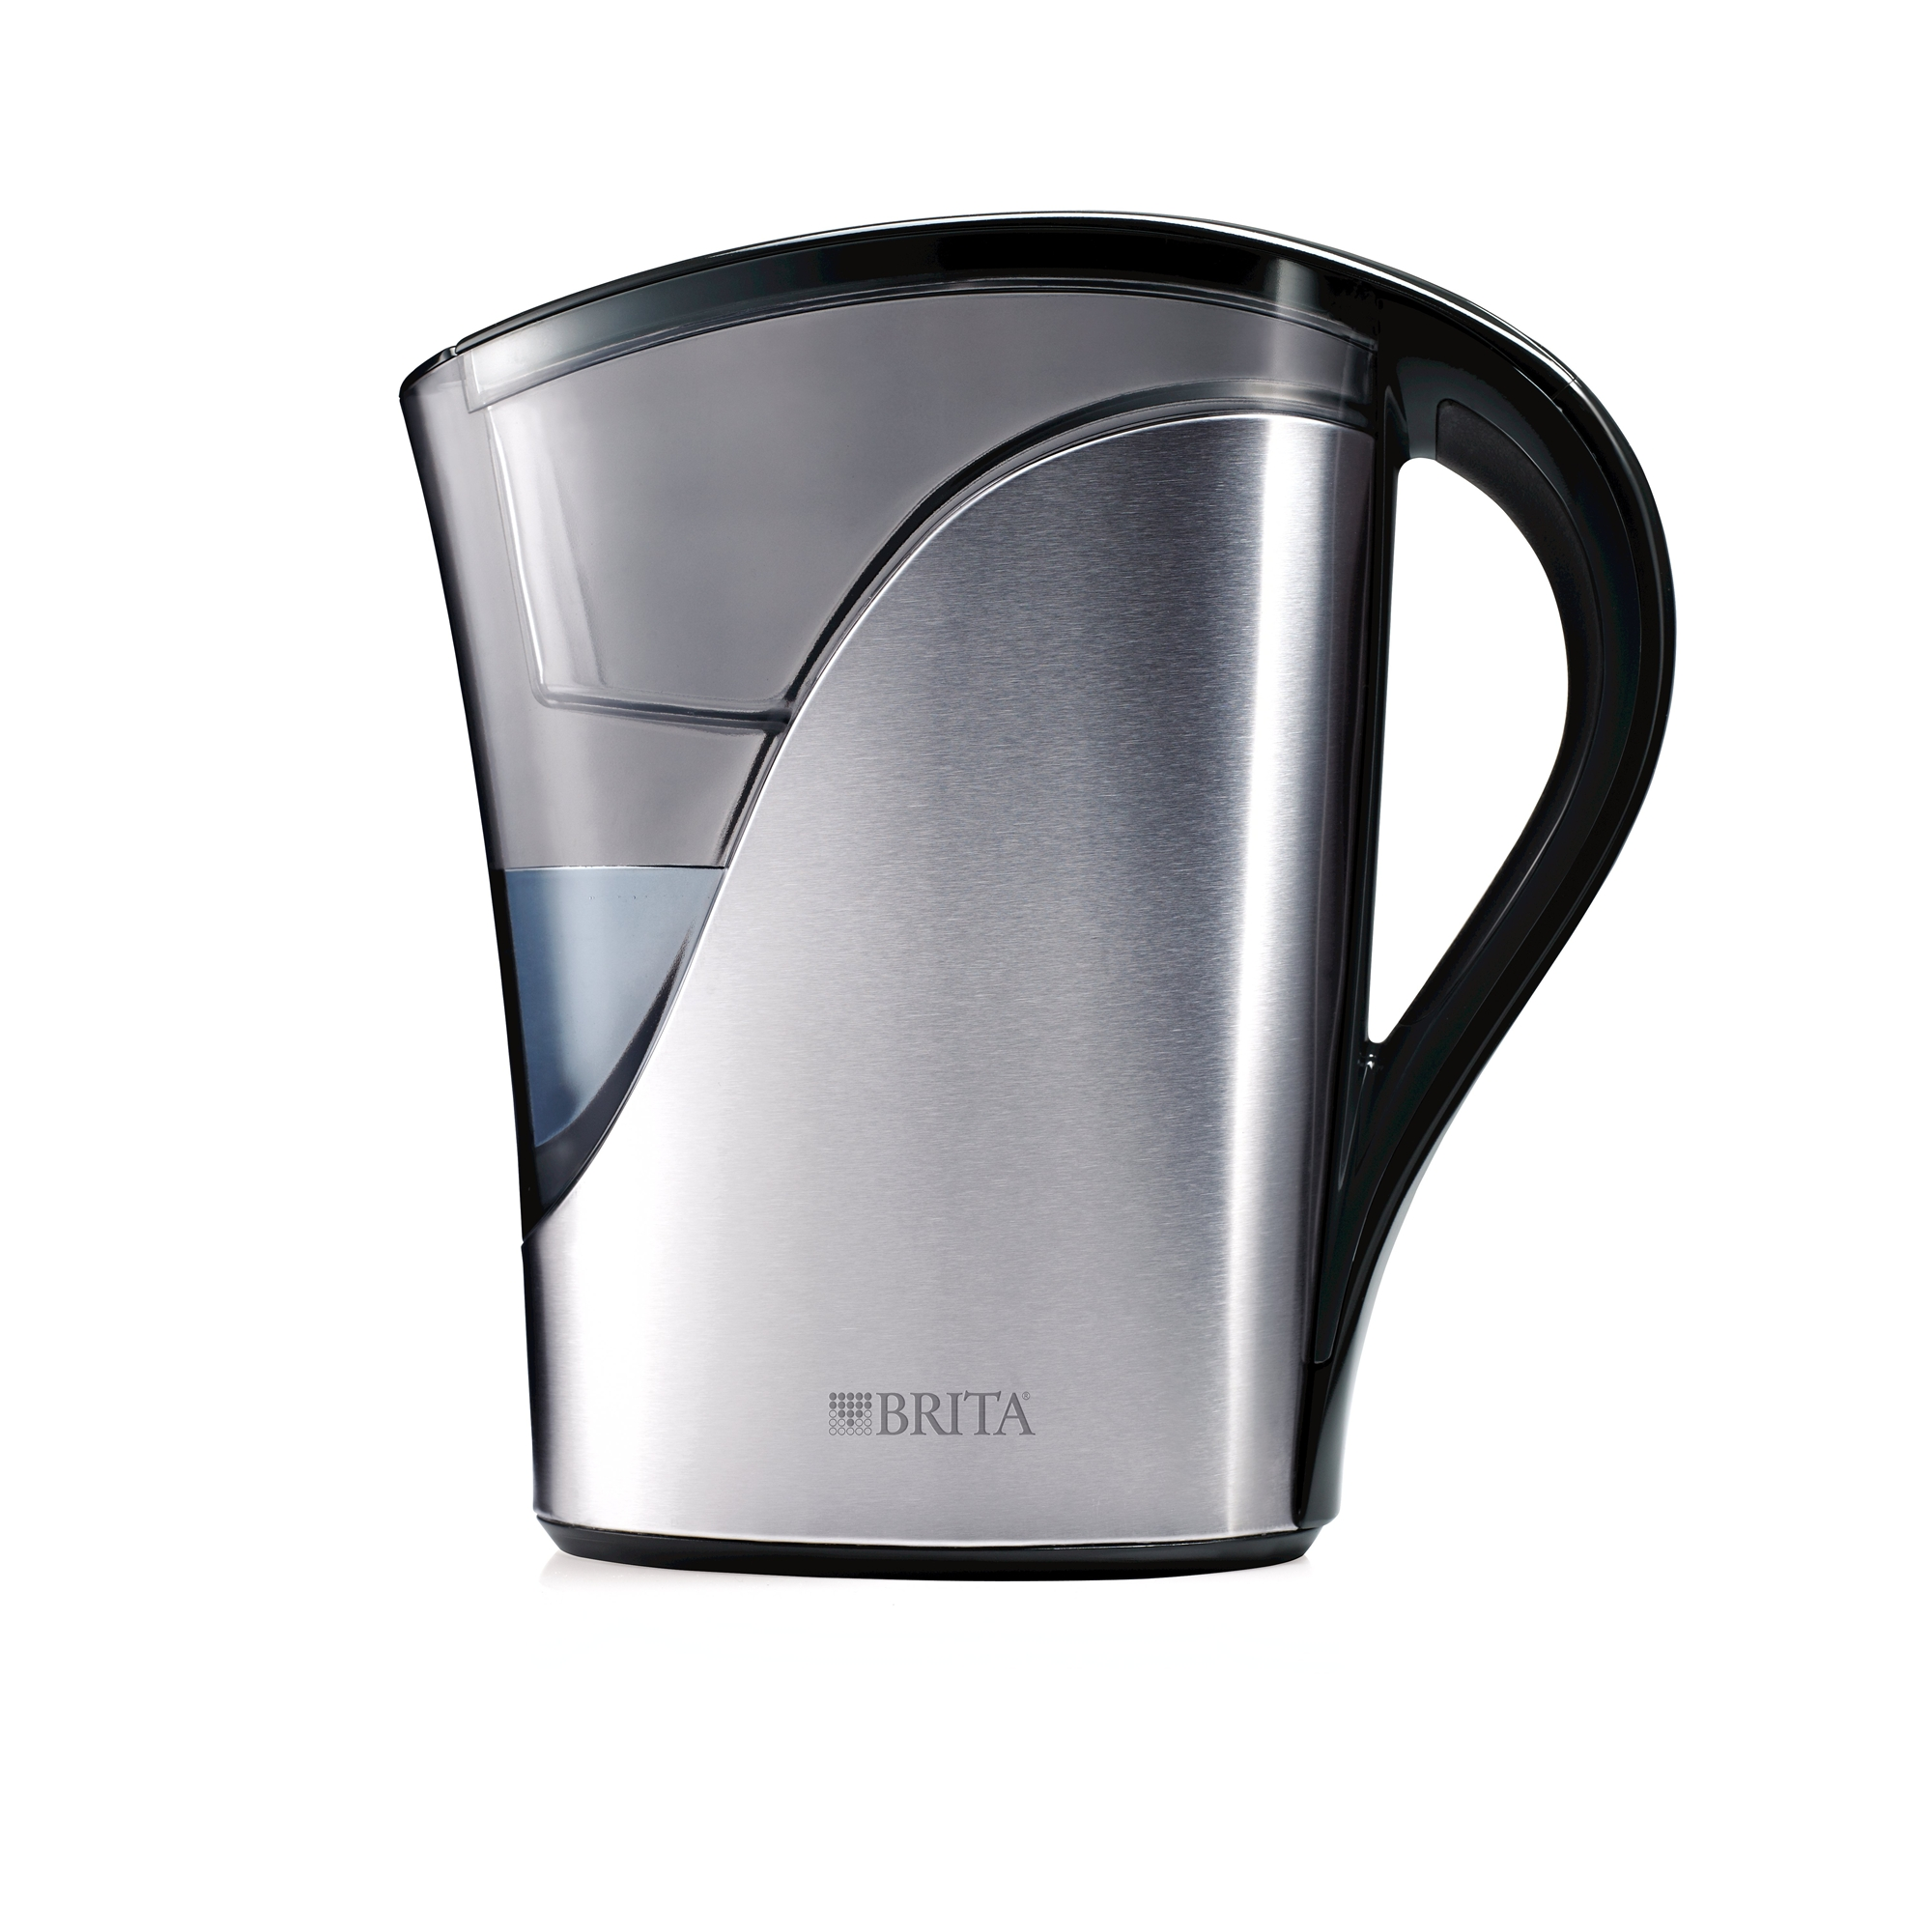 Brita Medium Stainless Steel Water Pitcher with Filter - 8 Cup - BPA Free